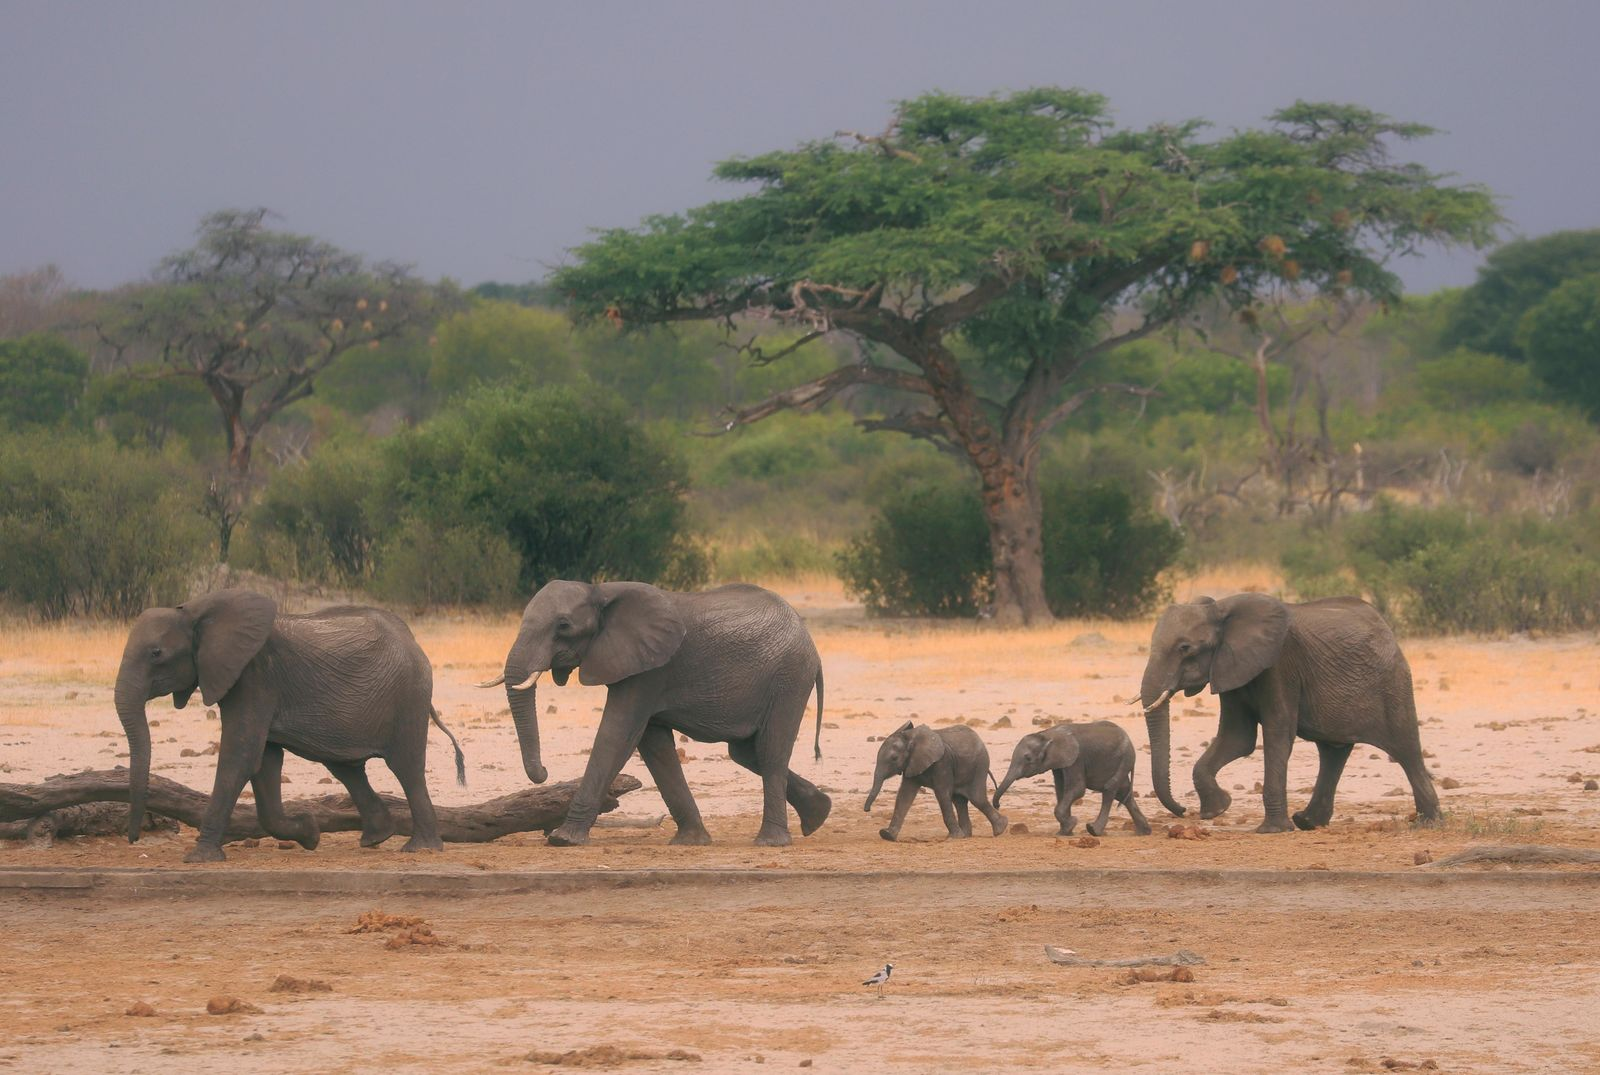 In this photo taken Sunday Nov. 10, 2019, a herd of elephants make their way through the Hwange National Park, Zimbabwe, in search of water. More than 200 elephants have died amid a severe drought, Zimbabwe's parks agency said Tuesday Nov. 12, and a mass relocation of animals is planned to ease congestion. (AP Photo)